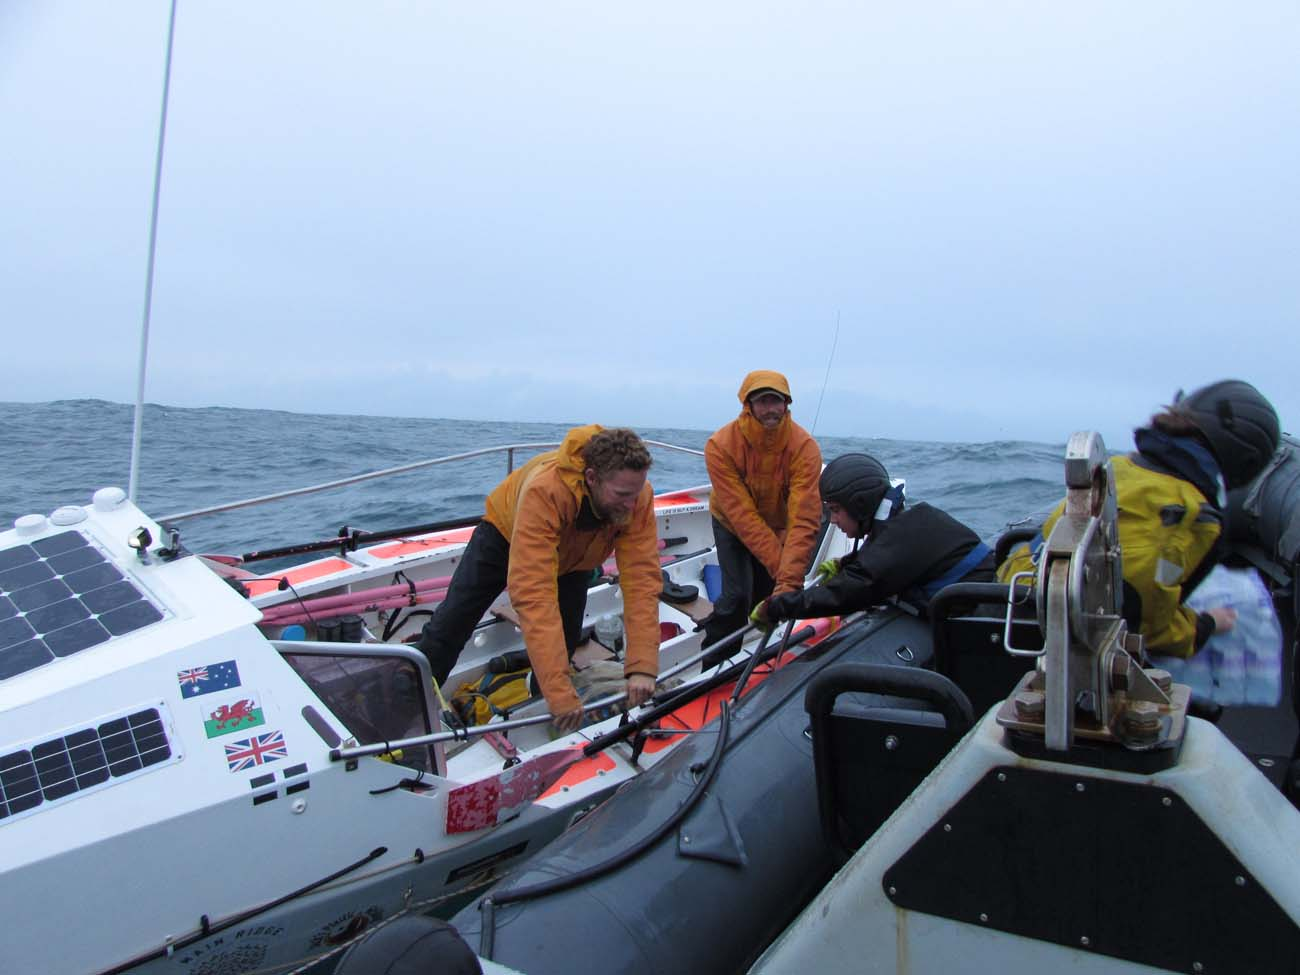 Royal Navy aids transatlantic rowers miles from final destination